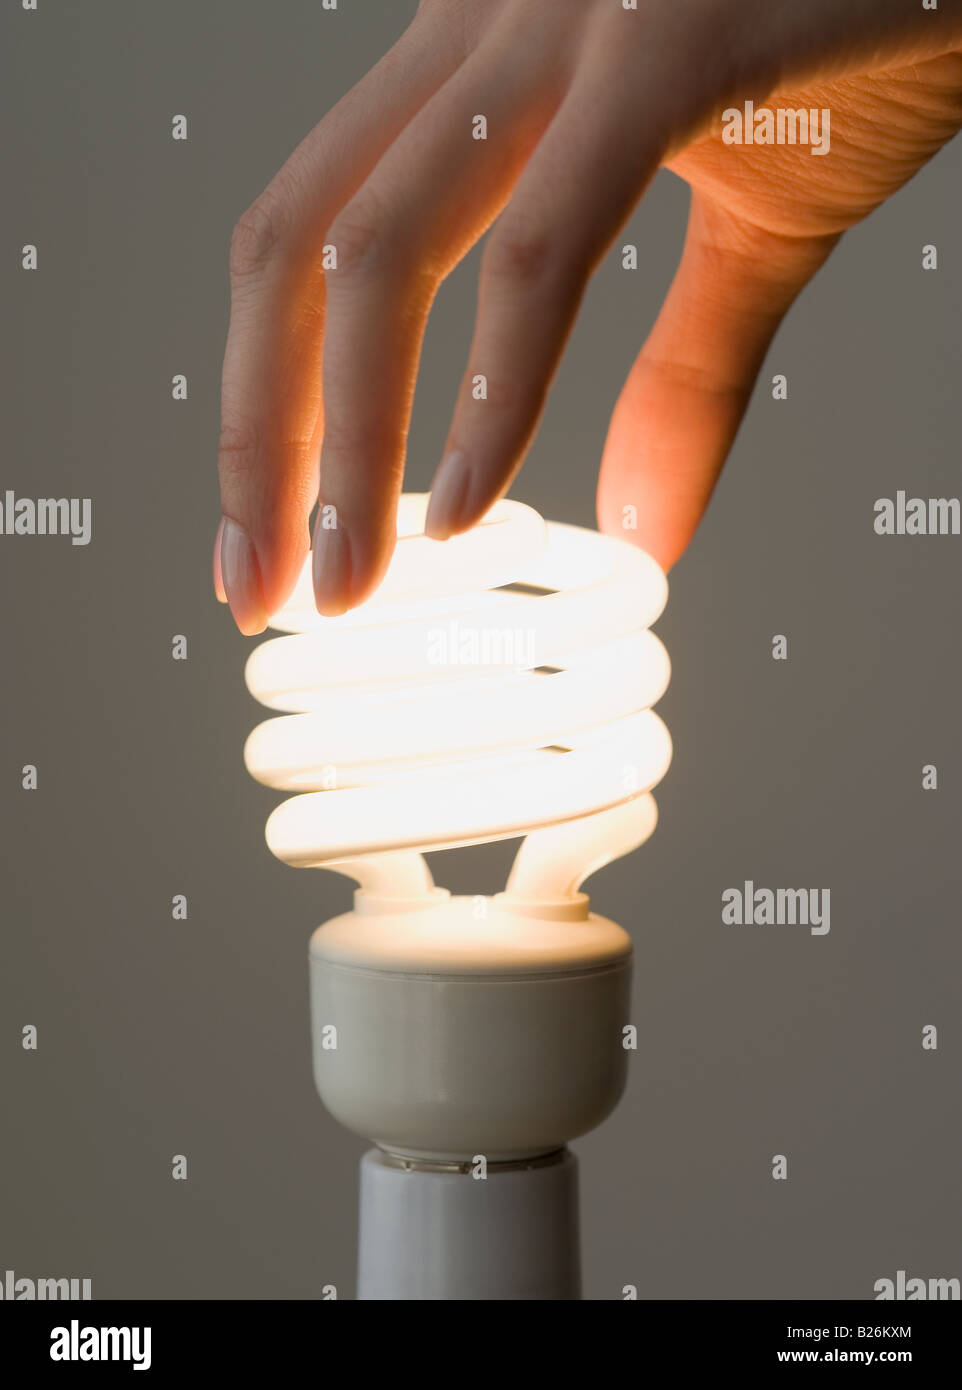 Woman screwing in energy-efficient light bulb - Stock Image